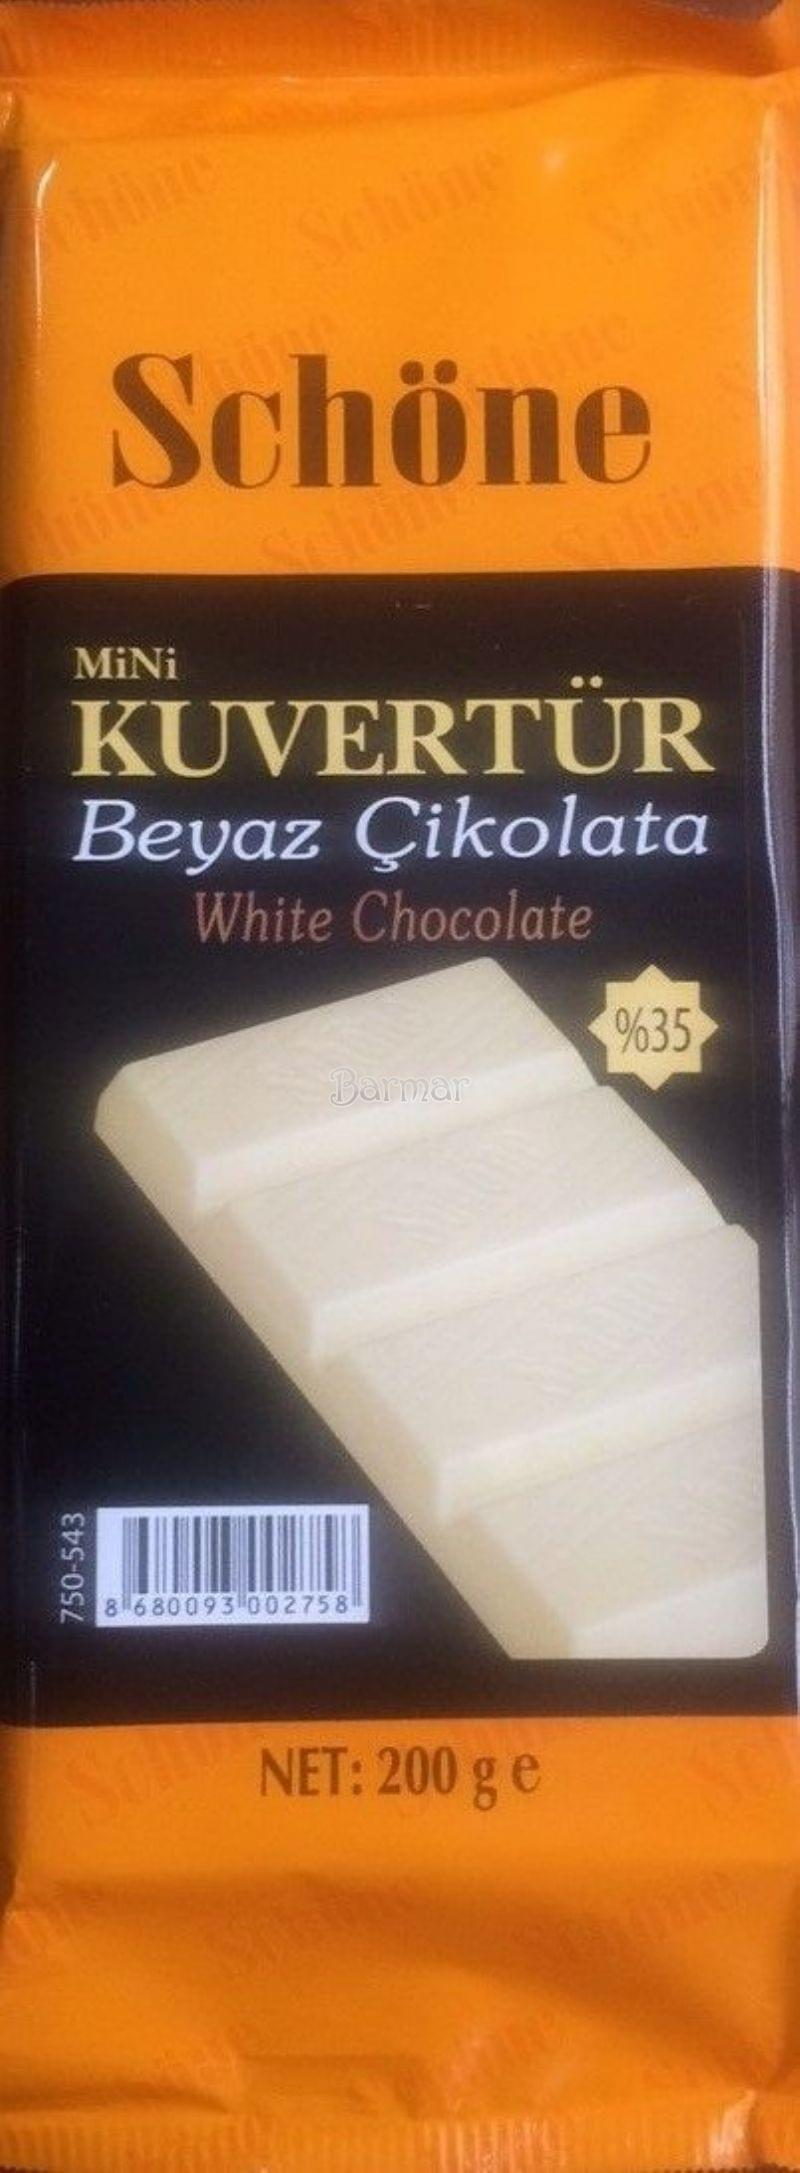 OVALETTE SCHONE MİNİ KUVERTÜR FİLDİŞİ 200 GR